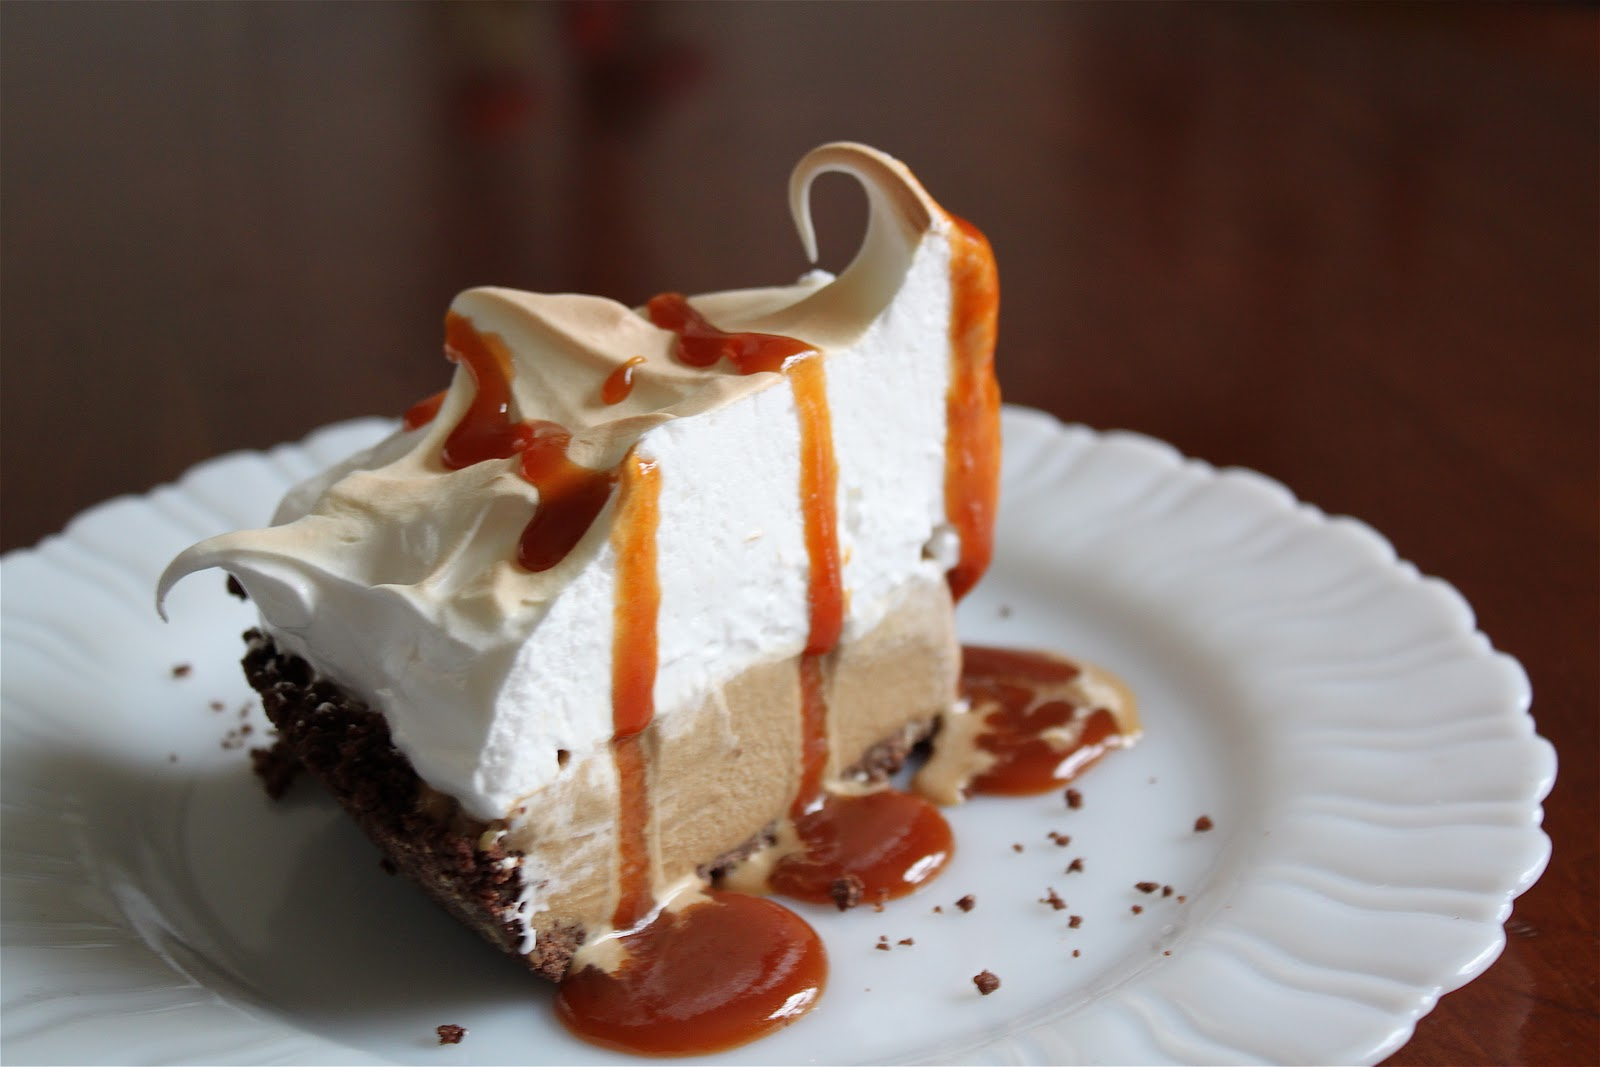 ... than pie: catching up with pie #12; butterscotch baked alaska pie